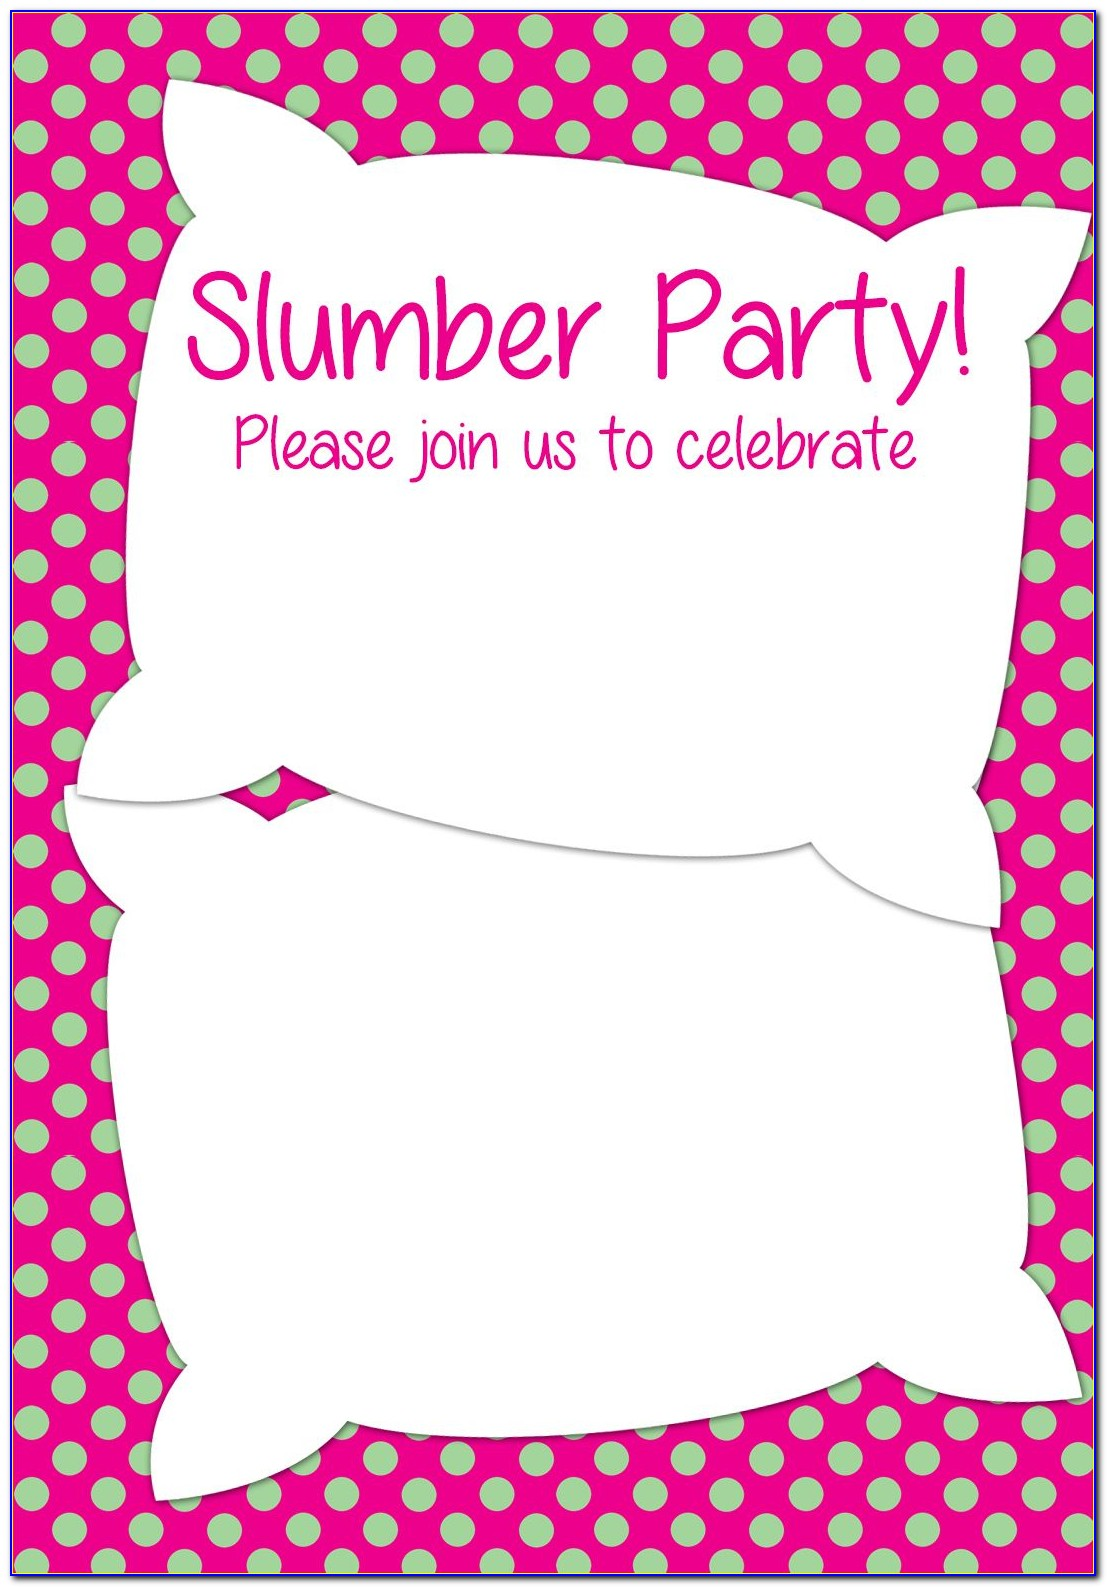 Pyjama Party Invitation Cards